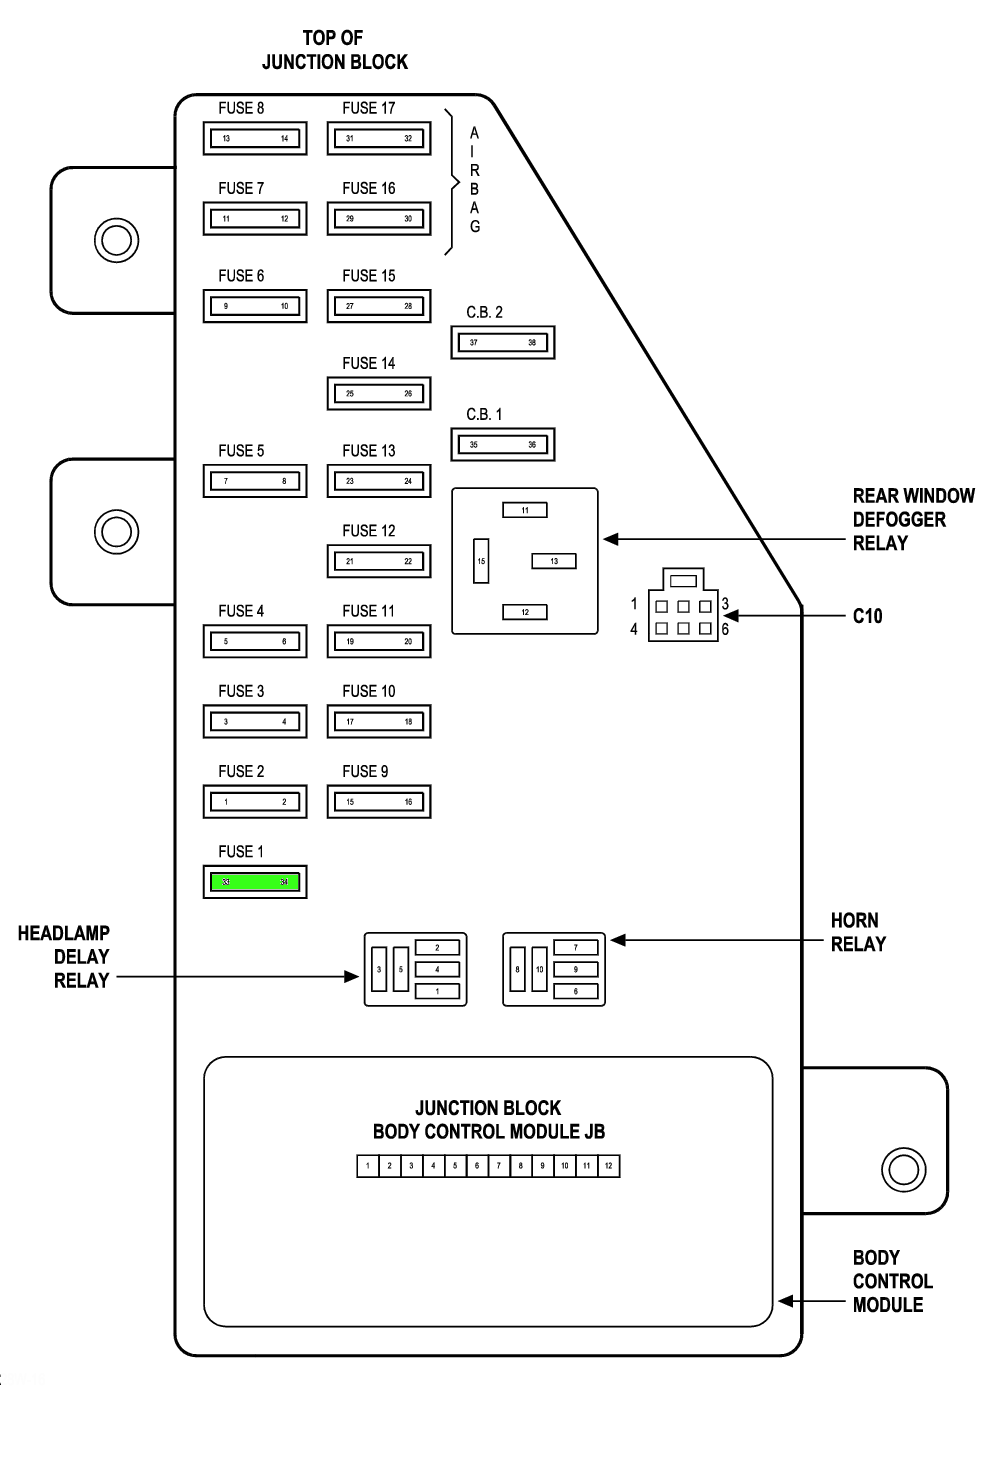 2004 Chrysler Pacifica Fuse Box Diagram Wiring Library On 2008 Cadillac Cts 2010 Sebring Opinions About U2022 2006